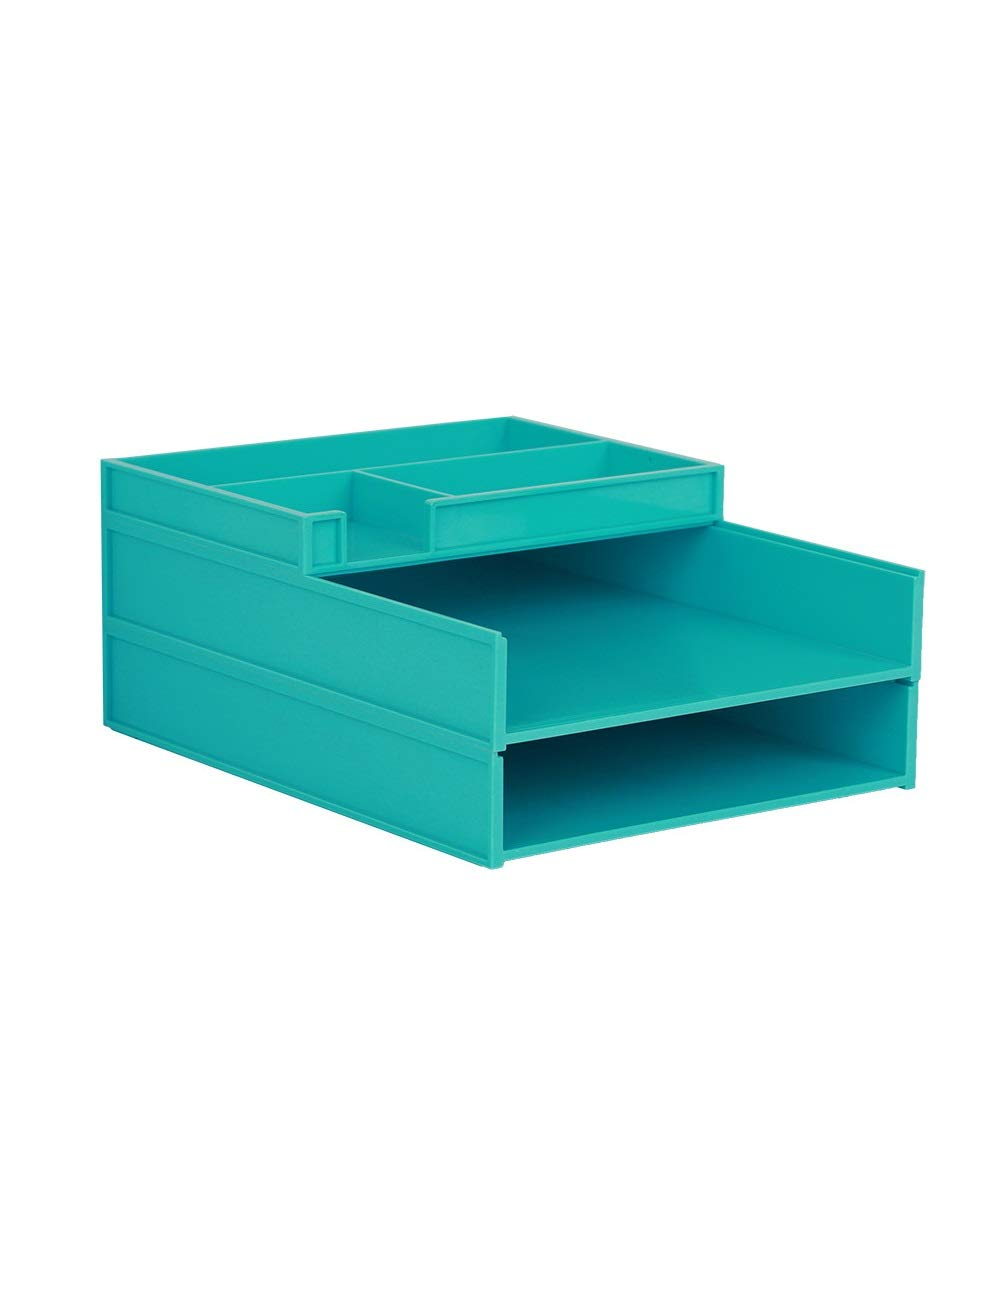 File Cabinet Office Desktop Cabinet 2 Drawers 31.624.66cm Plastic Safety Cabinet File Storage Cabinet Storage Box File Holder Filing cabinets (Color : B)